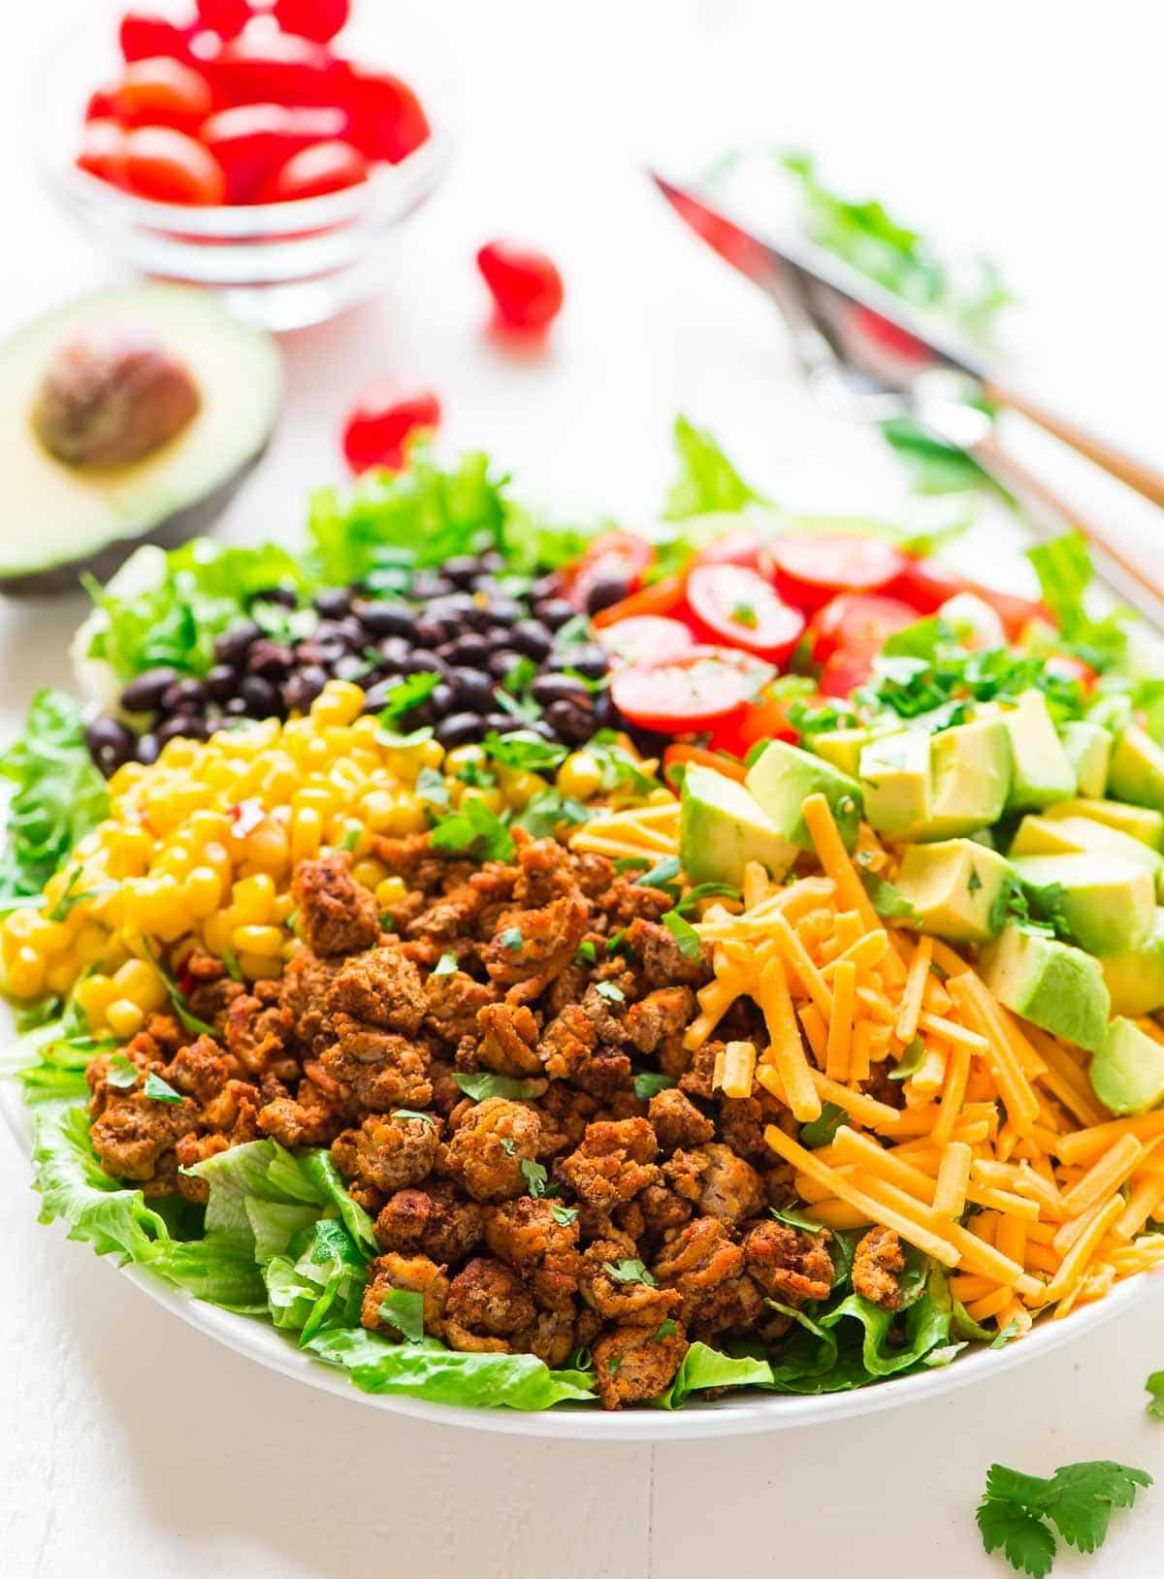 Healthy Taco Salad - Healthy Recipes Using Ground Turkey